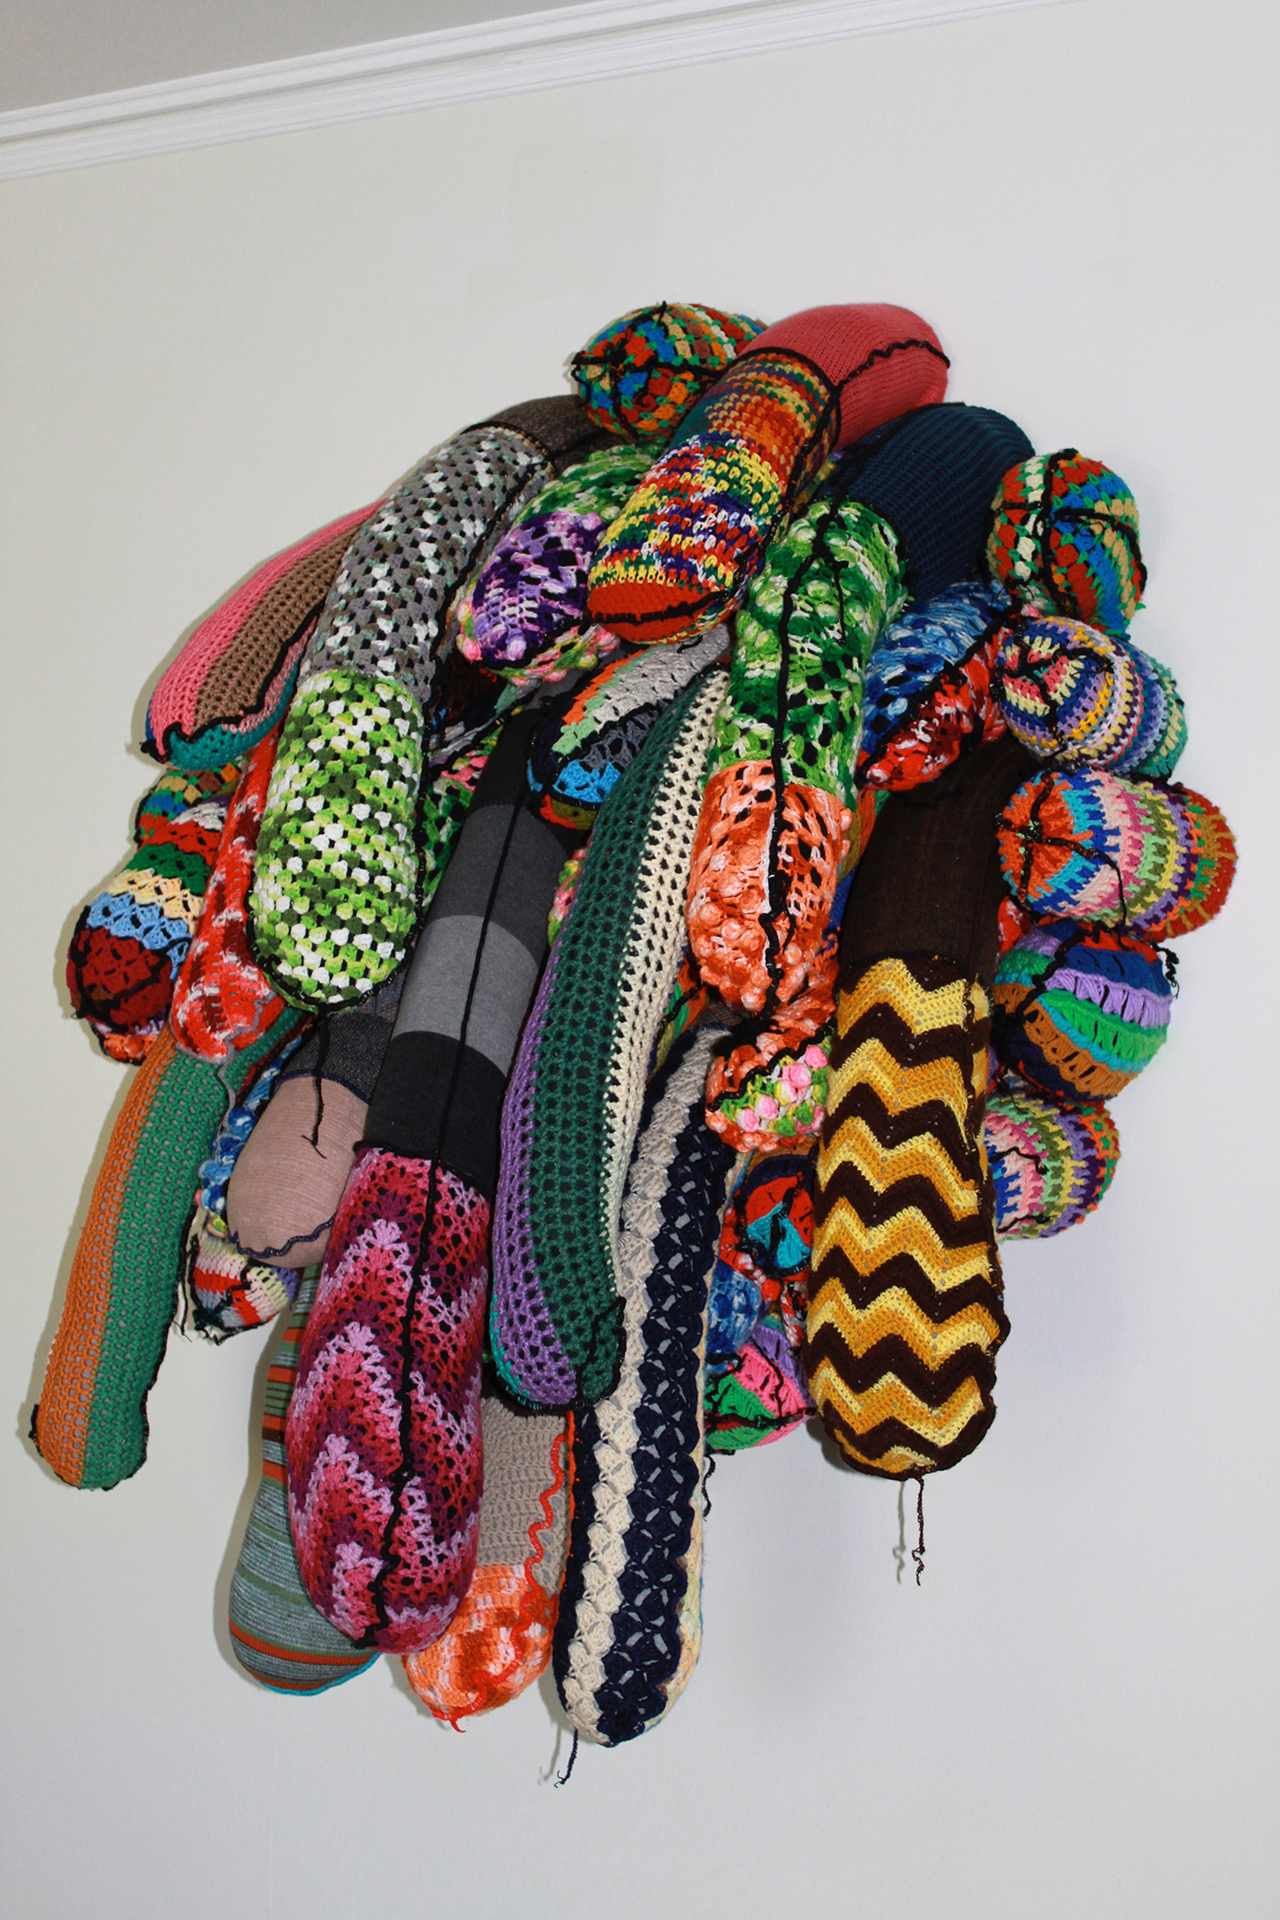 Soft Intervention , 2011, found afghans and polyfill, 60 x 48 x 22 inches